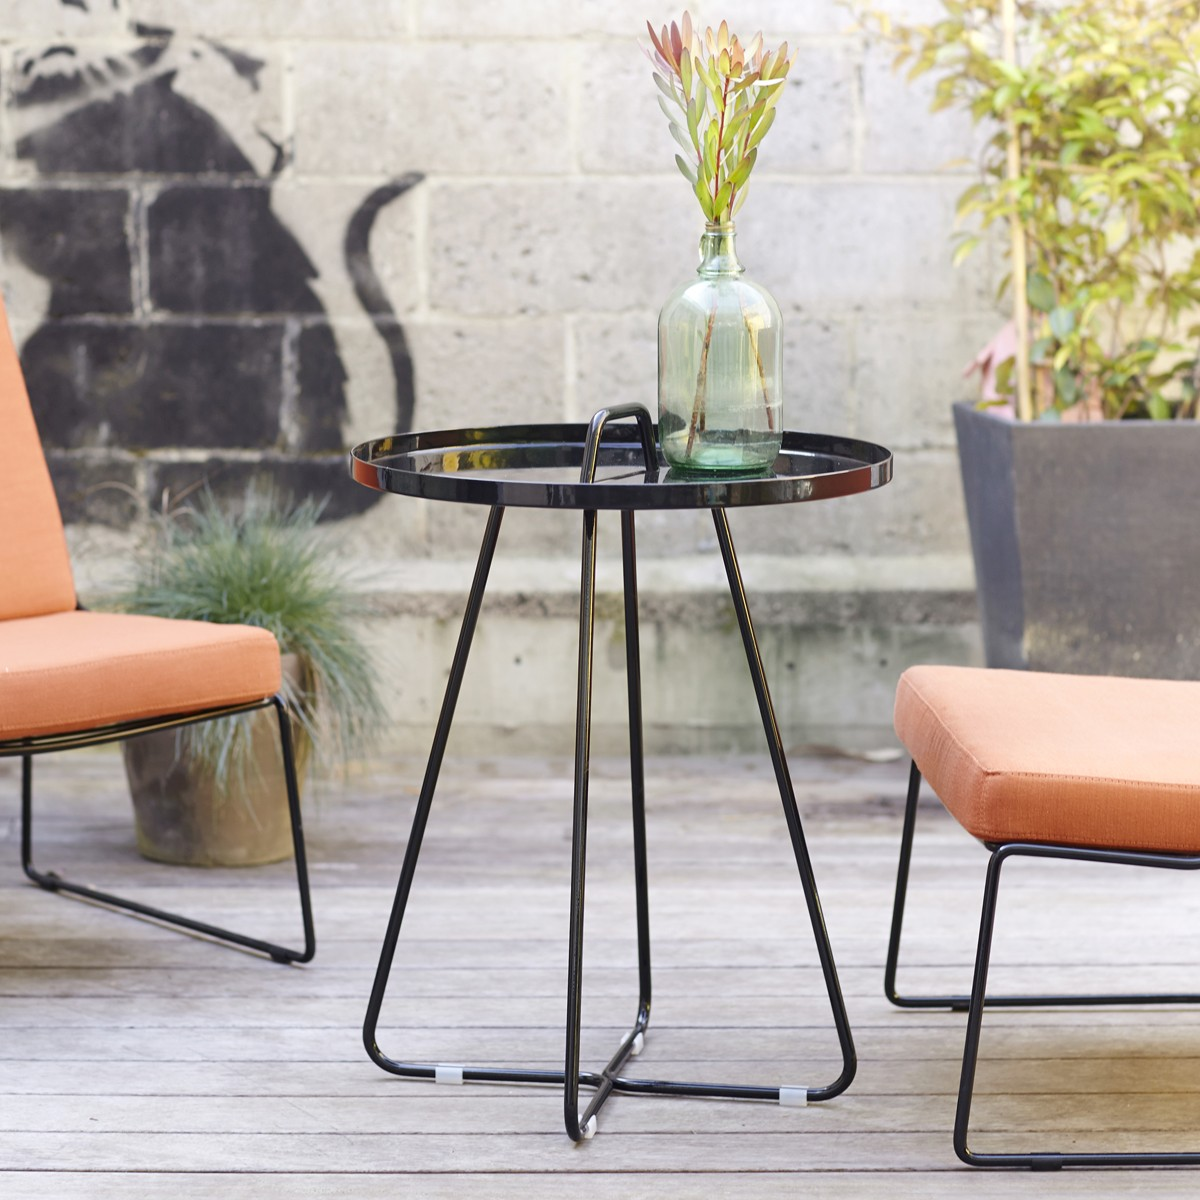 small round metal outdoor side table patio garden outside orange crosley retro pier imports dining grey marble black kitchen set hairpin accent desk lamps setting rose gold short